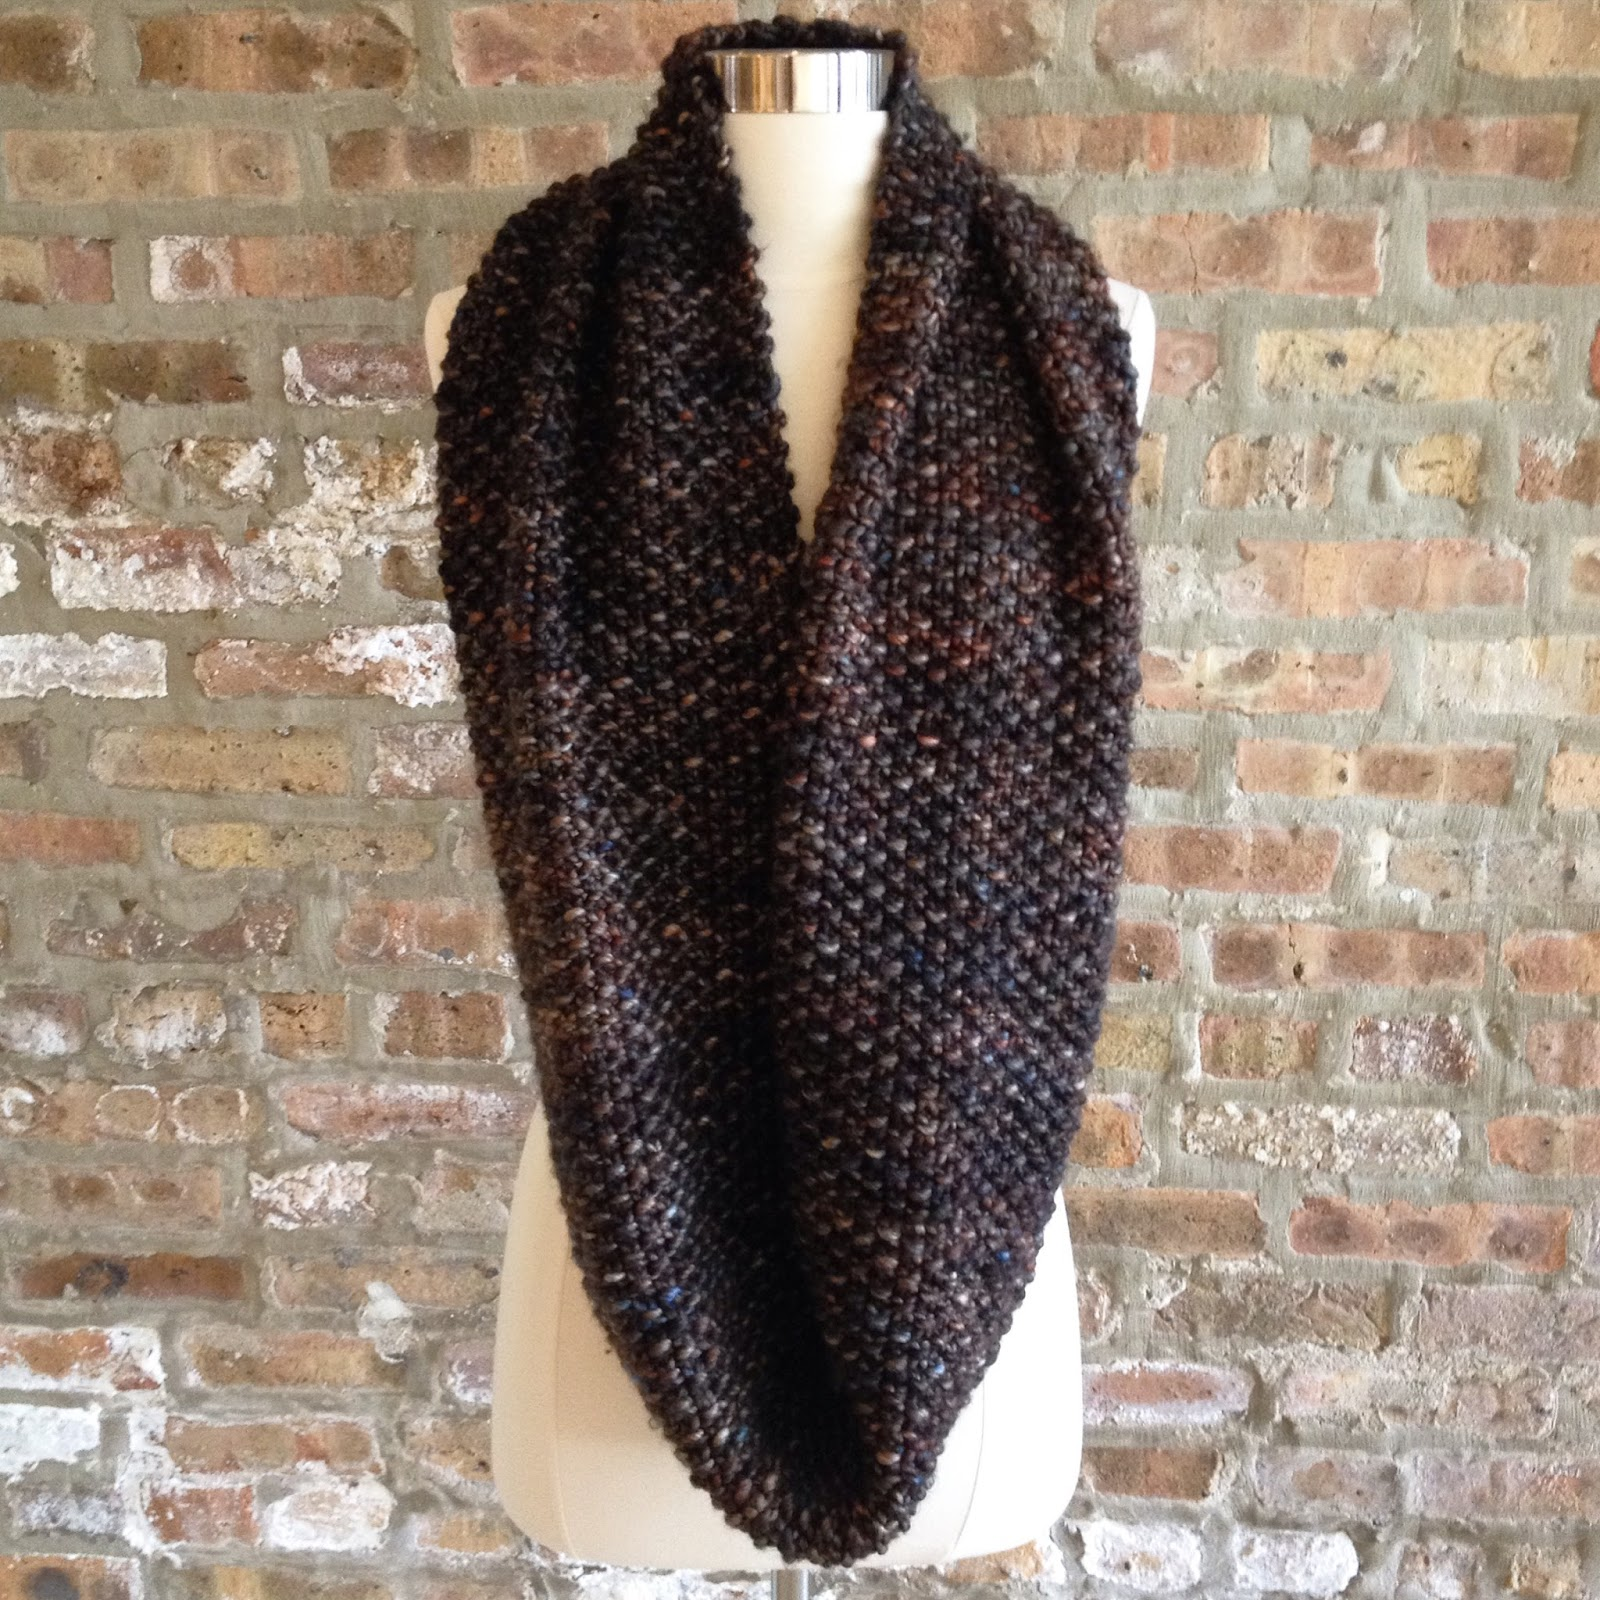 Clementine Knits: Clementine Knits Seed Stitch Infinity Scarf Pattern